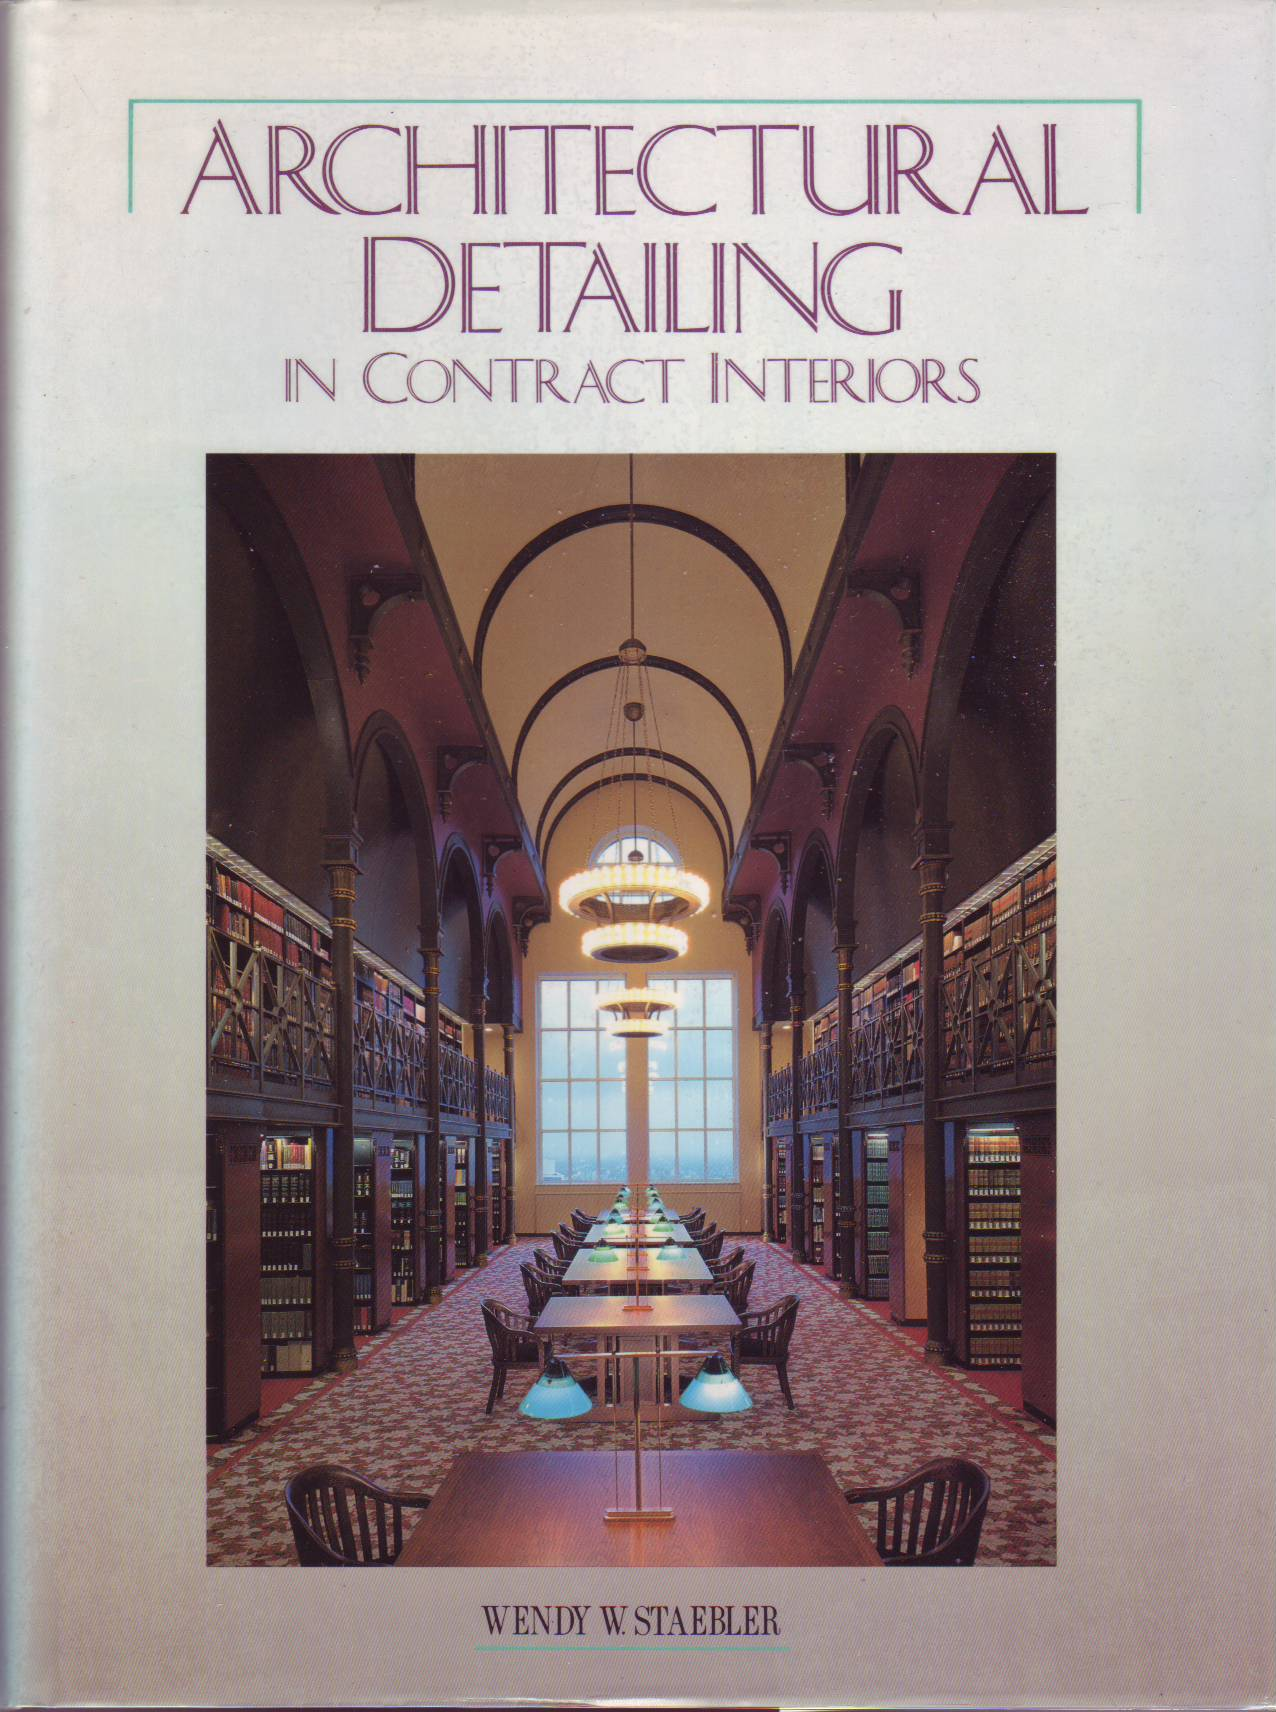 Architectural Detailing in Contract Interiors